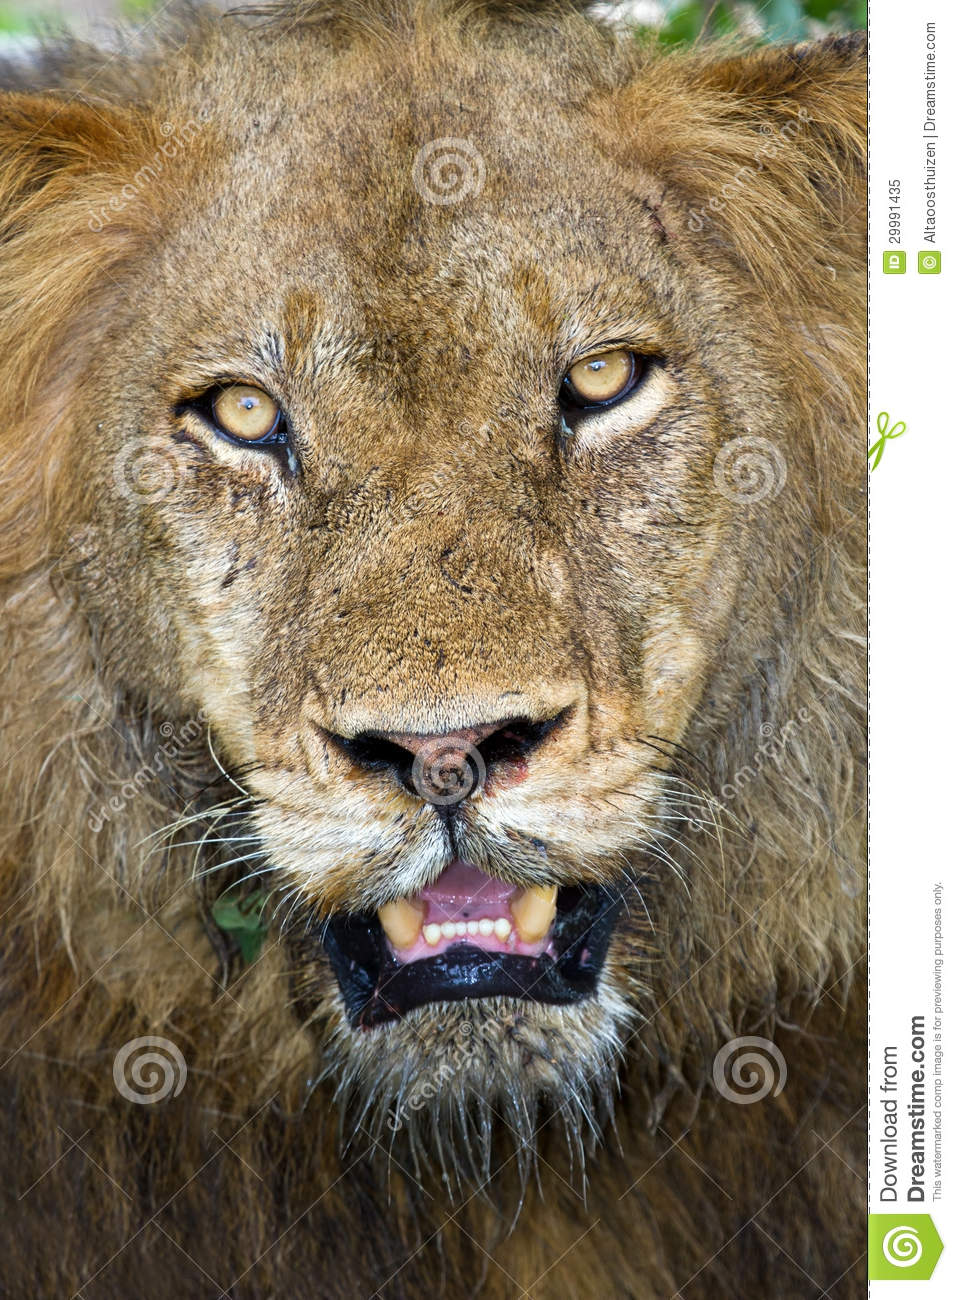 Angry lion face images